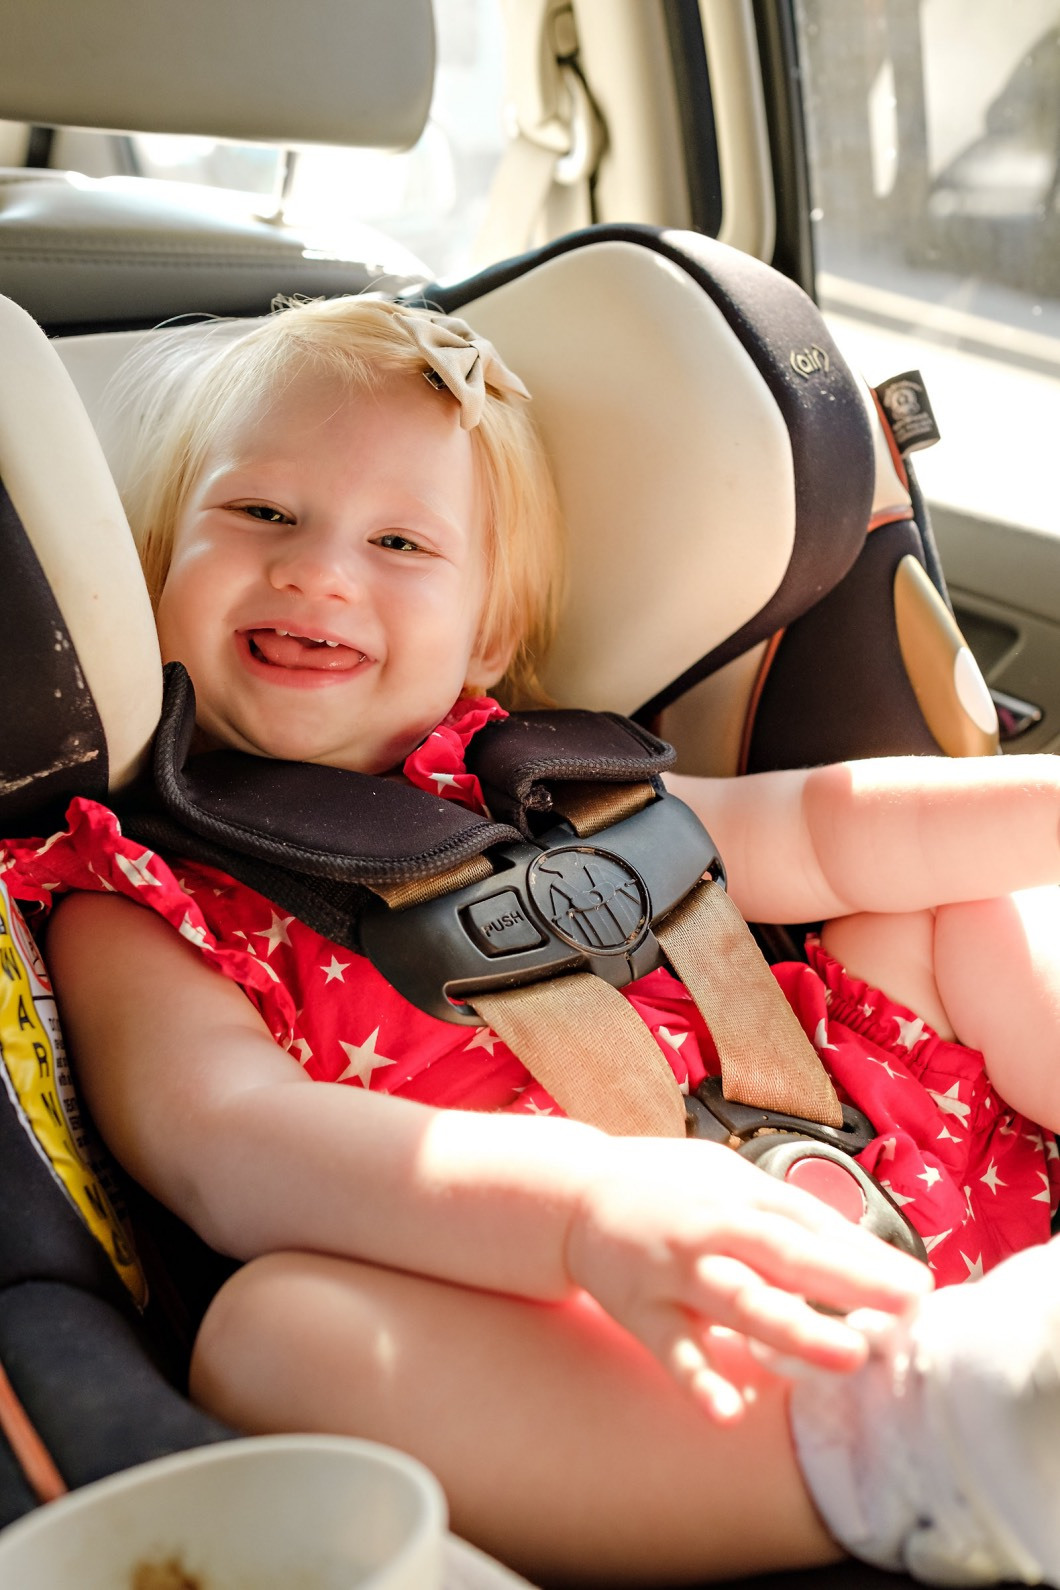 baby with fat rolls - How to Plan a Road Trip with Kids by Atlanta mom blogger Happily Hughes